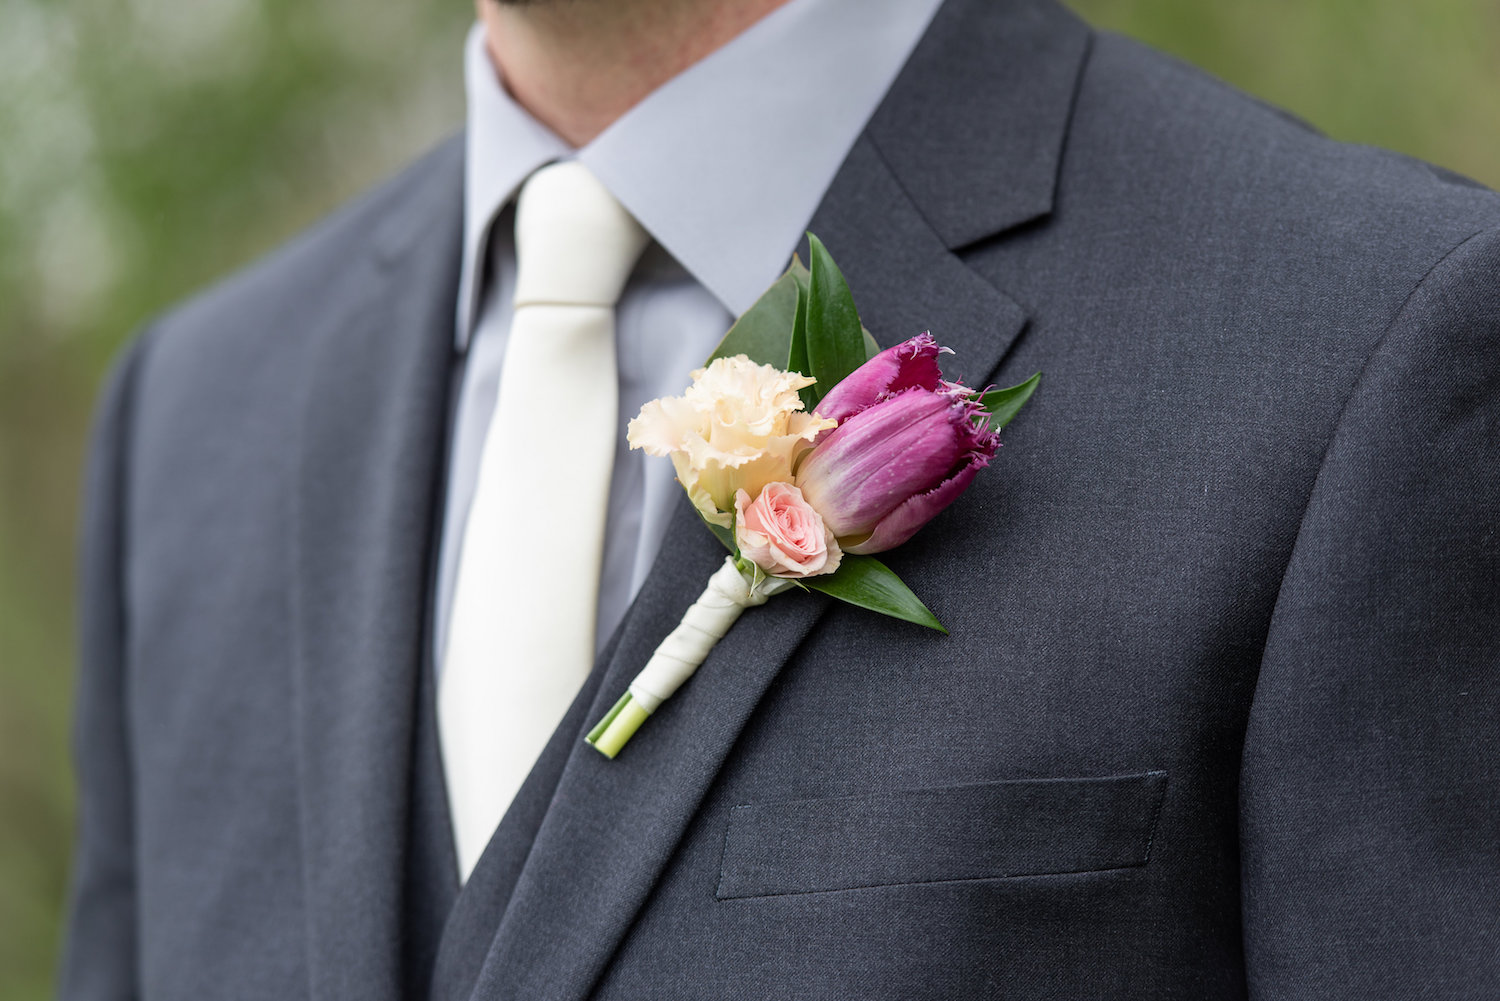 Sarah and Mark | Hope Glen Farm | Kelly Birch Photo | Sixpence Events & Planning wedding planning in Minnesota | tulip boutonniere | white tie with grey suit and grey shirt with vest